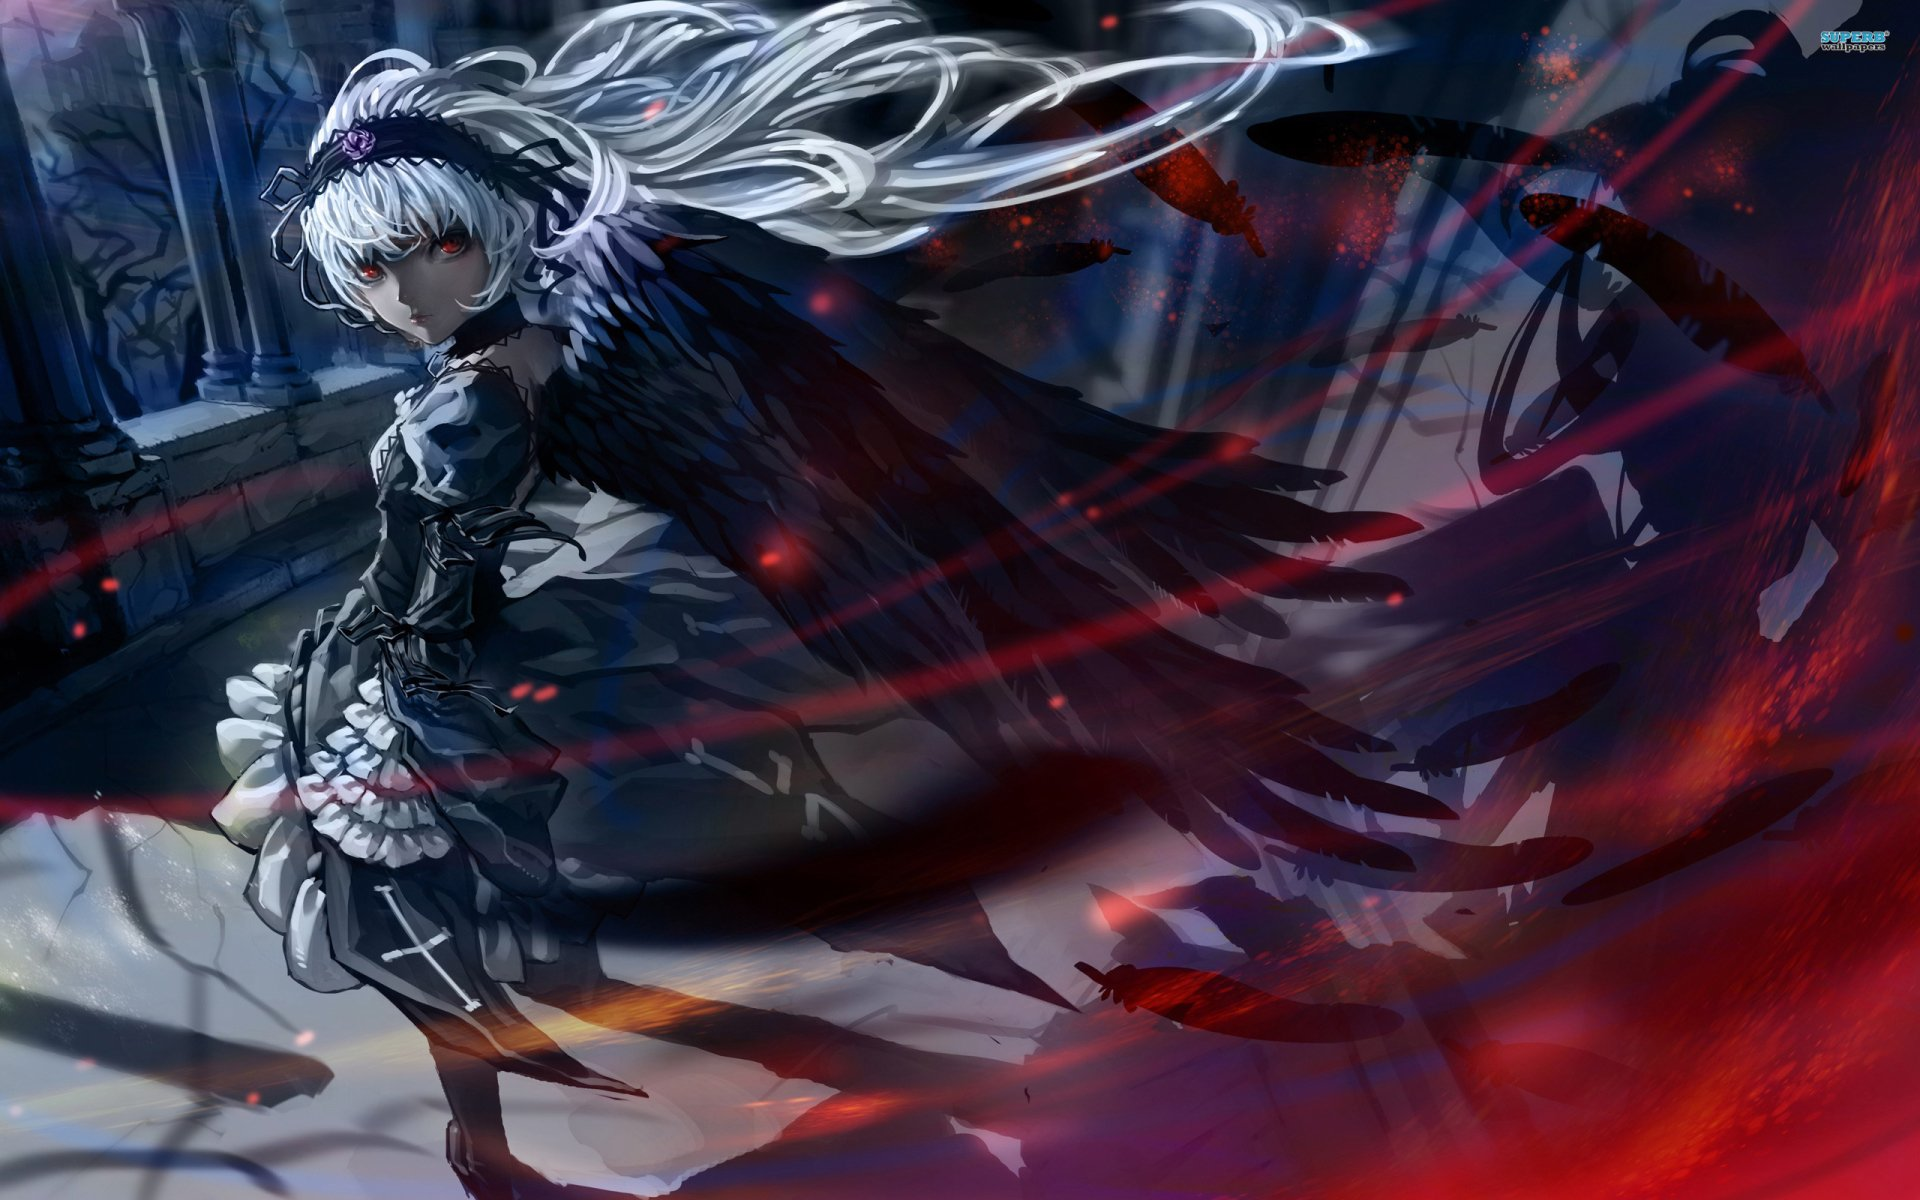 Anime - Rozen Maiden  Suigintou (Rozen Maiden) Wallpaper